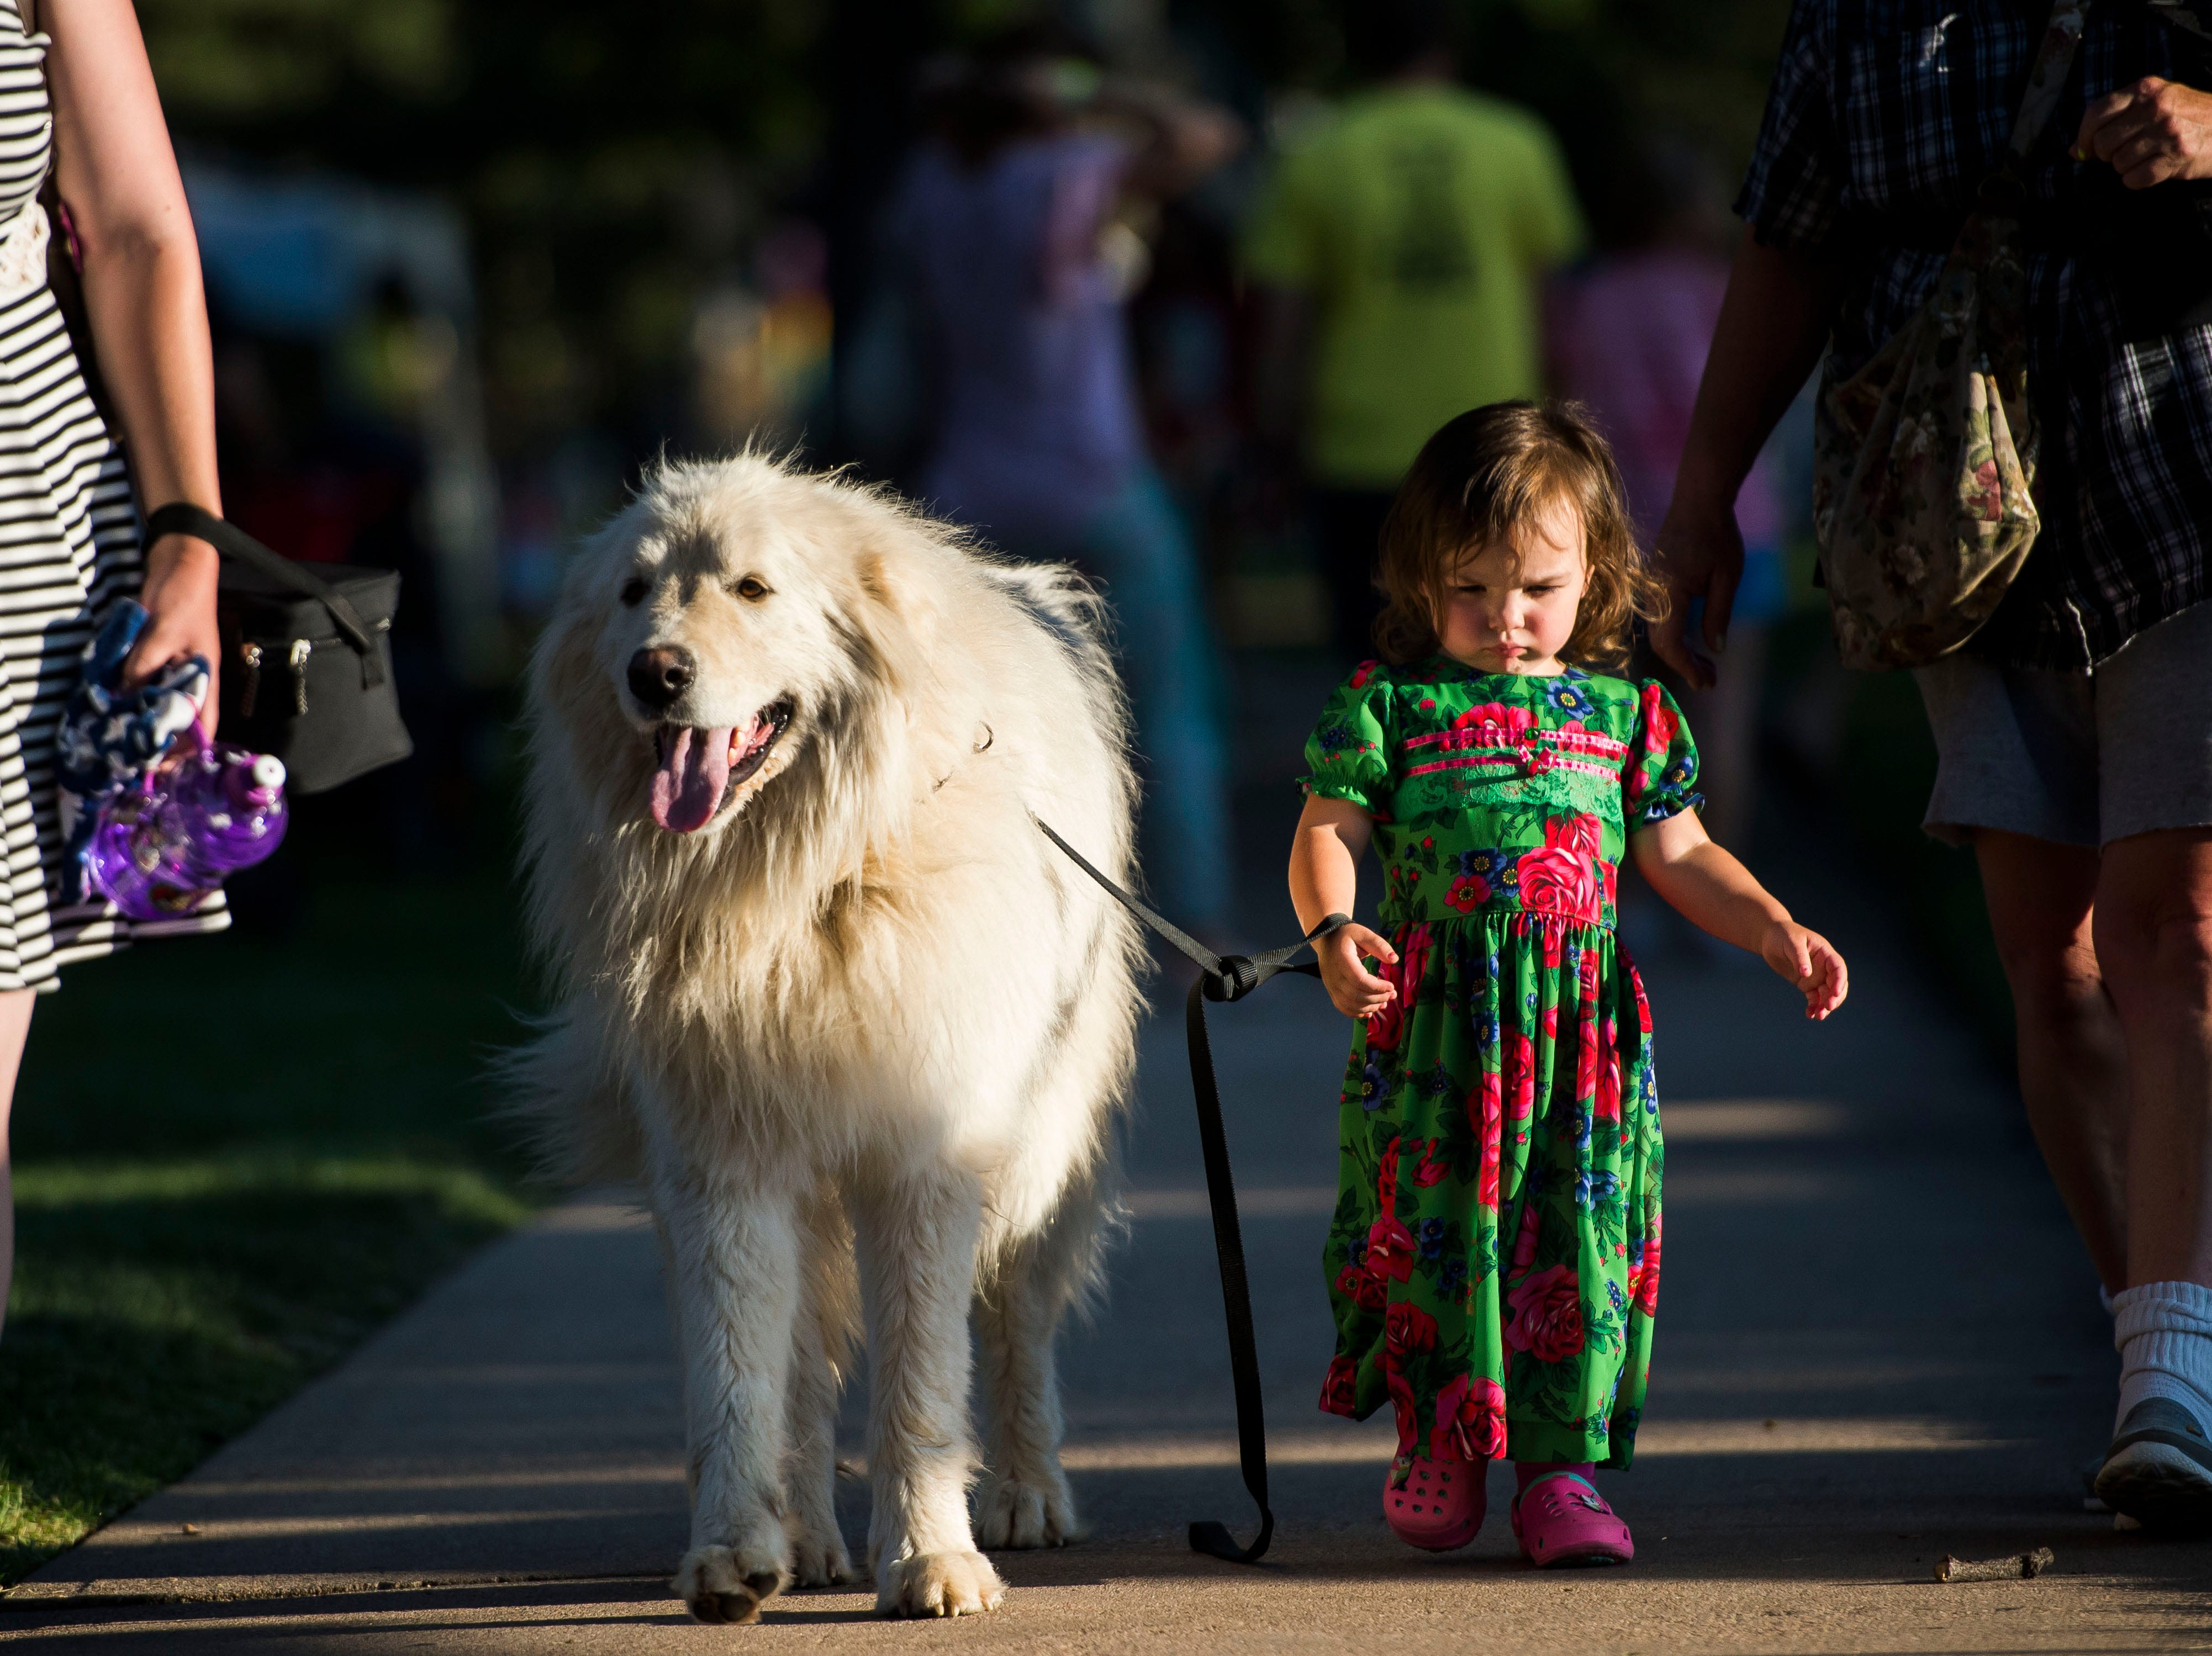 Frosia Alagoz, 2, walks three year old Anatolian shepherd Kuval during the first day of Bohemian Nights at NewWestFest on Friday, Aug. 10, 2018, at  in Old Town Fort Collins, Colo.